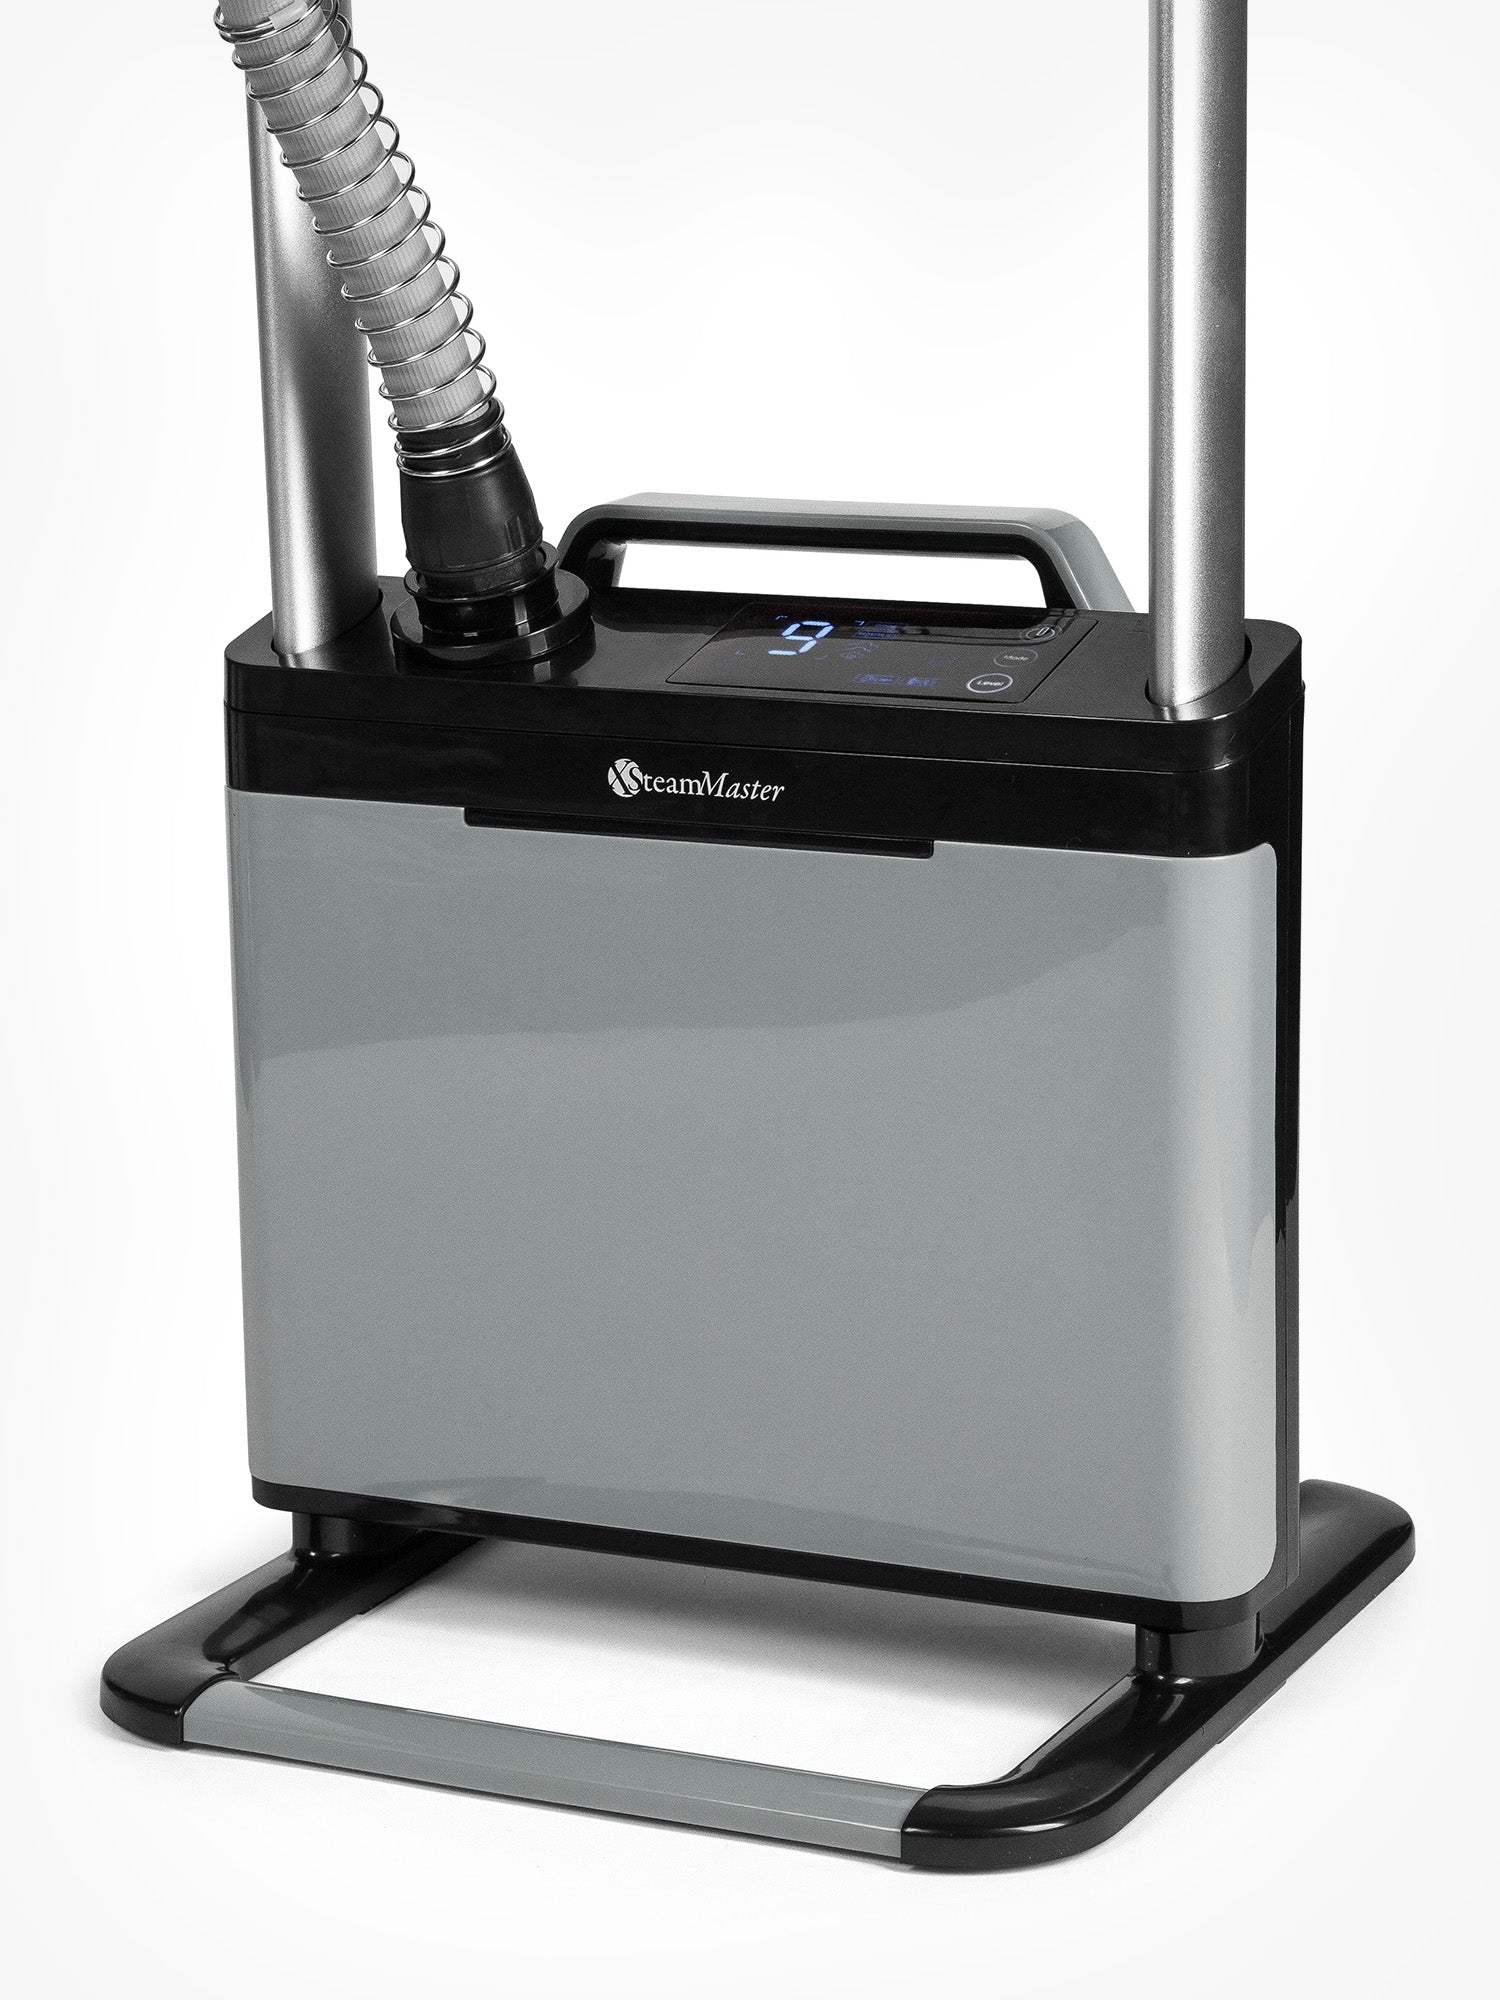 The Promax Garment Steamer